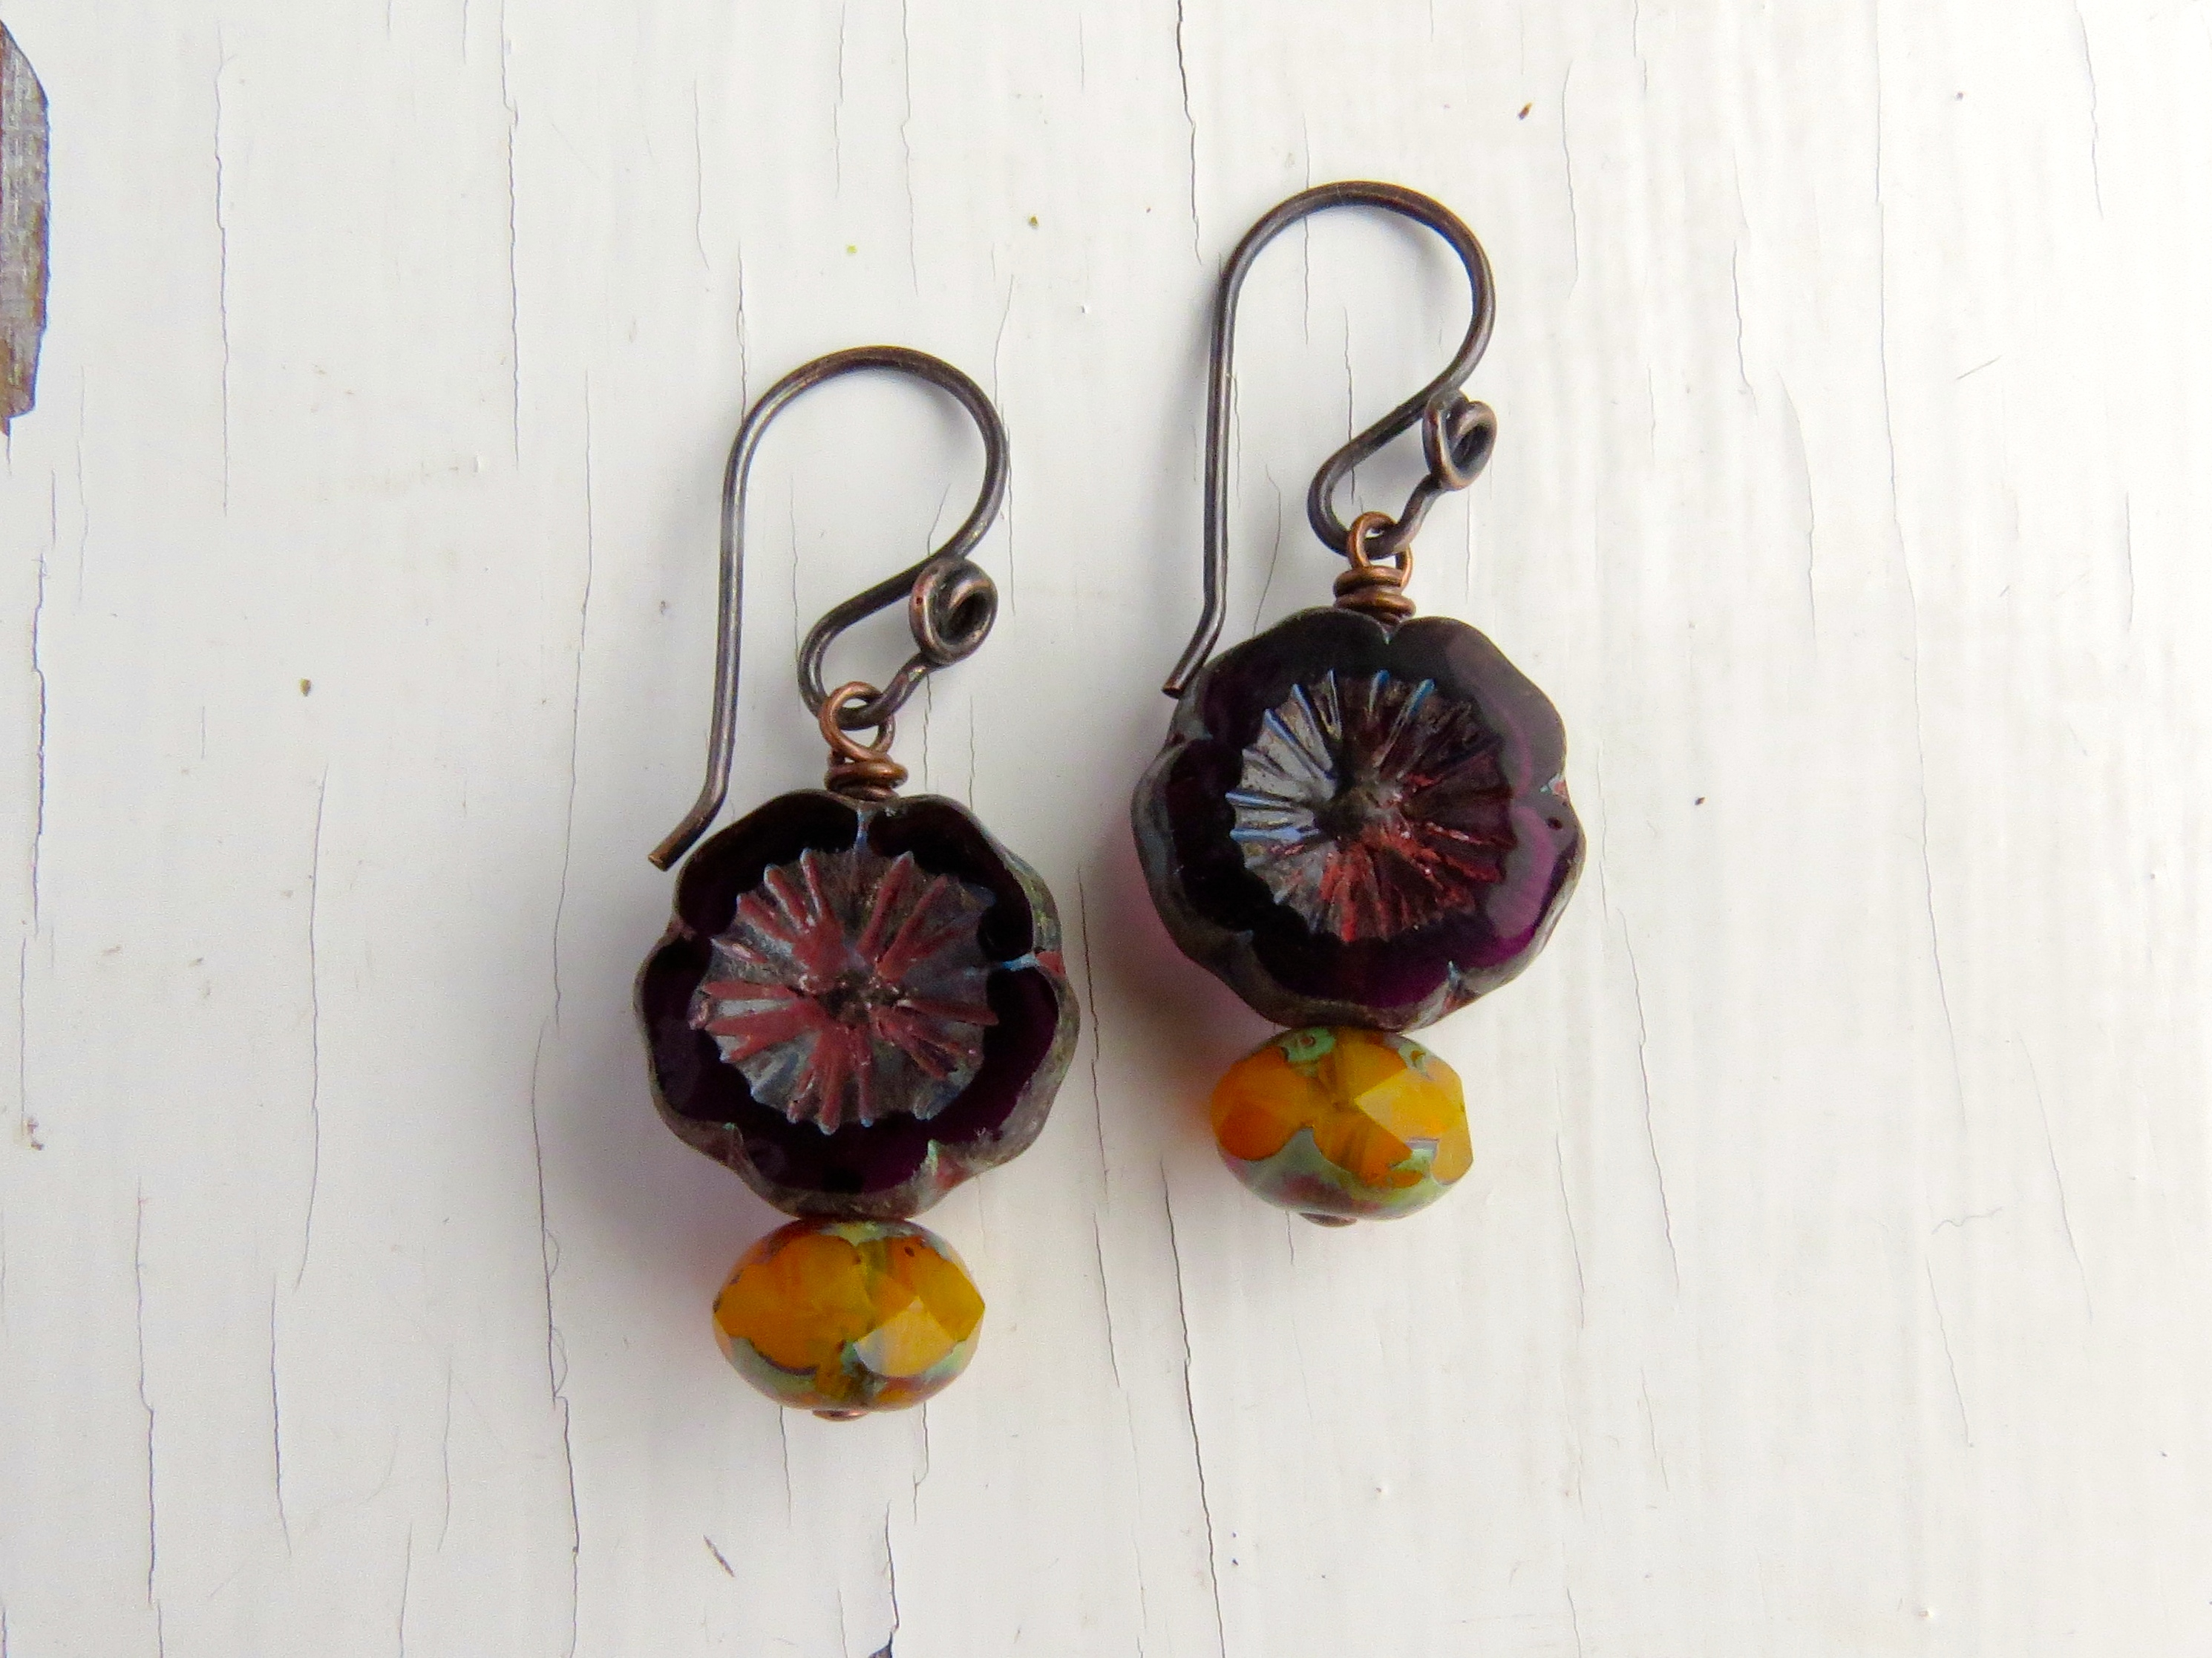 Handmade earrings with handmade copper earwires from the Curious Bead Shop